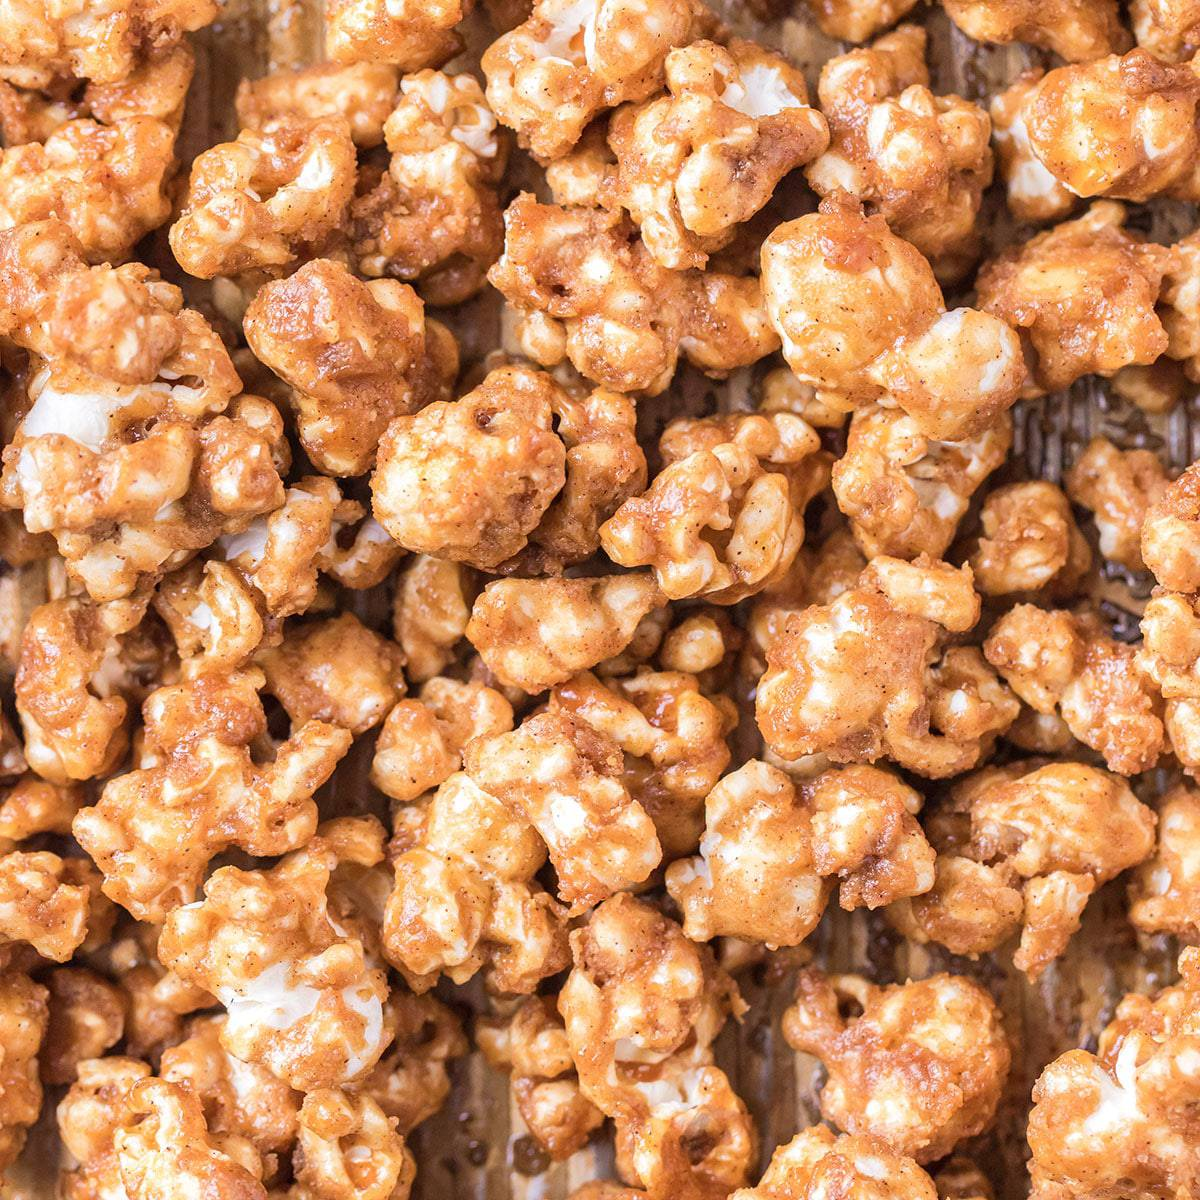 Closeup view of caramel popcorn.